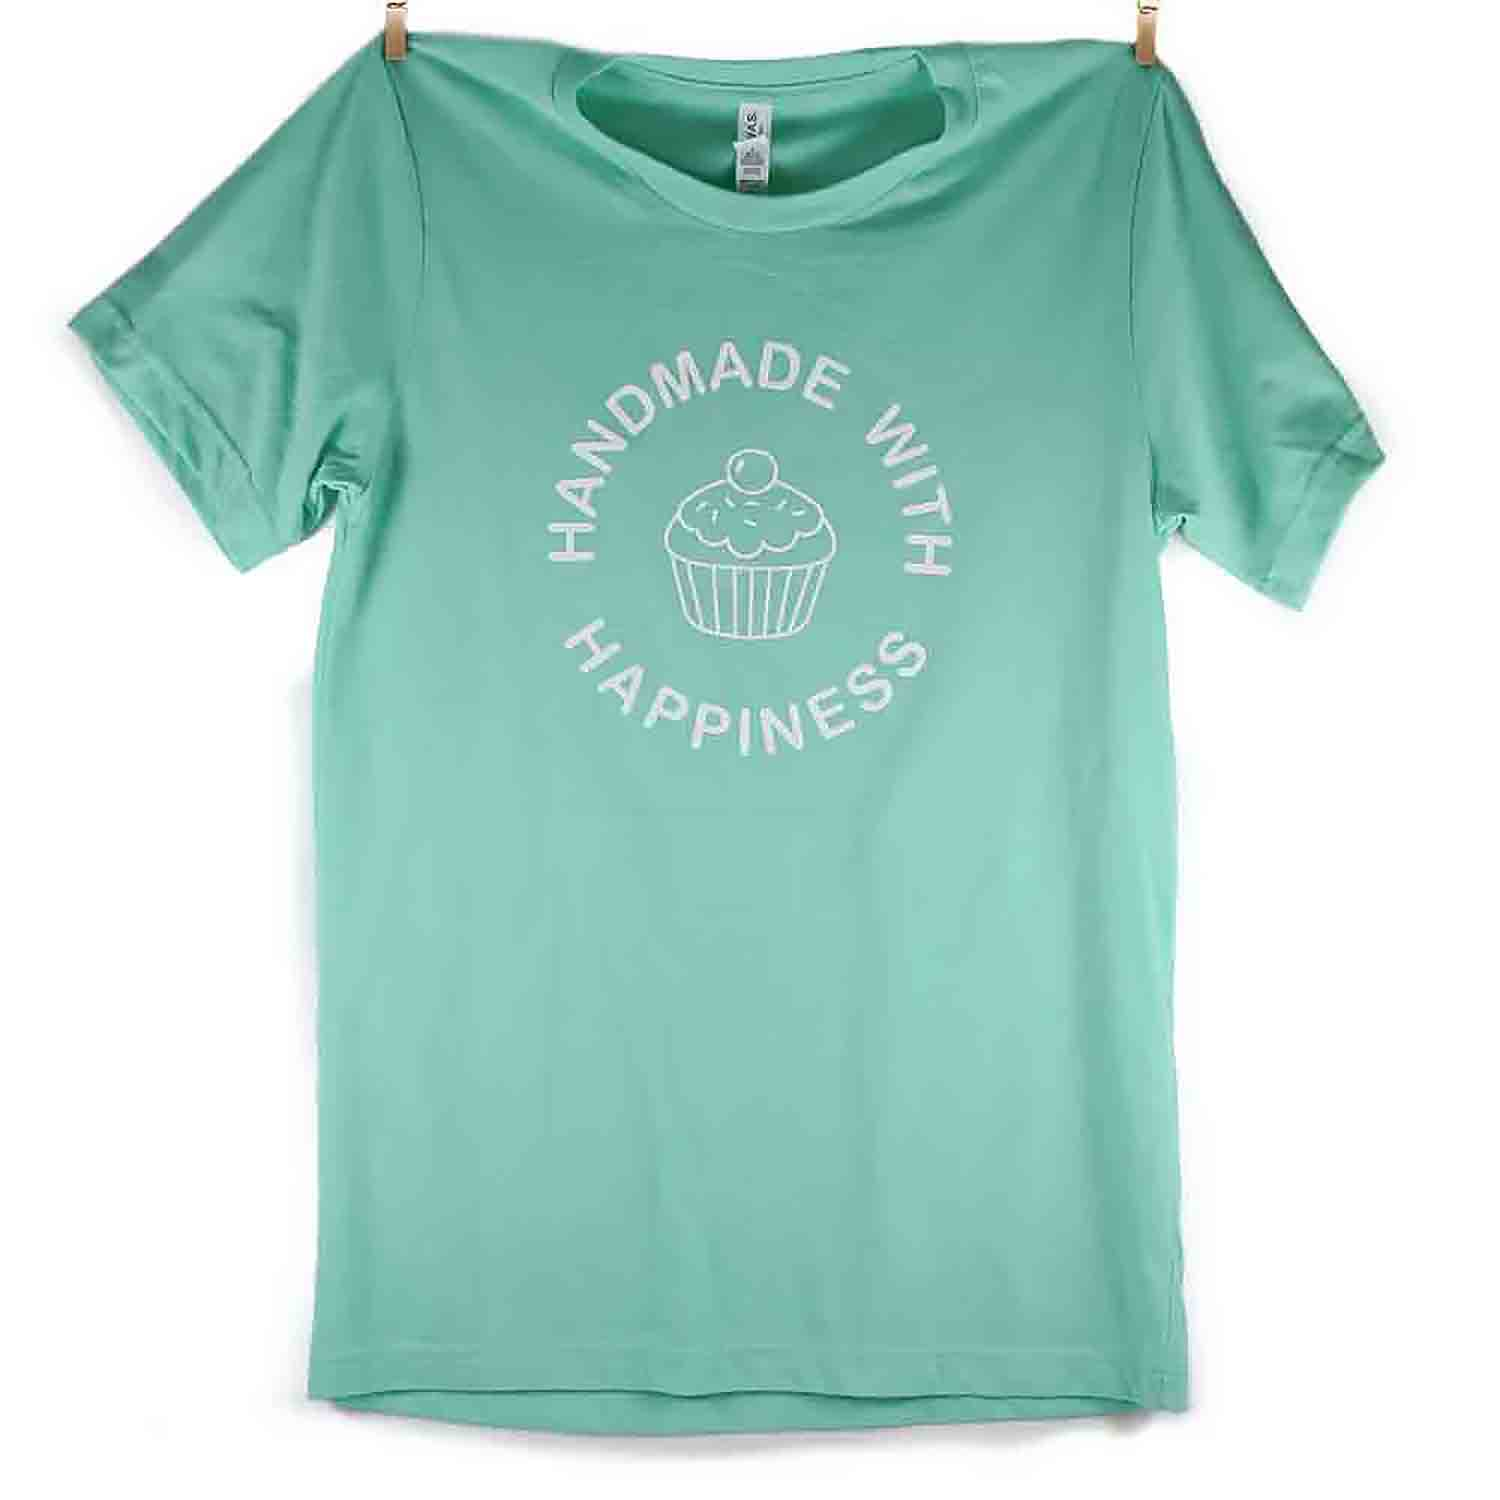 Mint Handmade with Happiness T-Shirt - Small